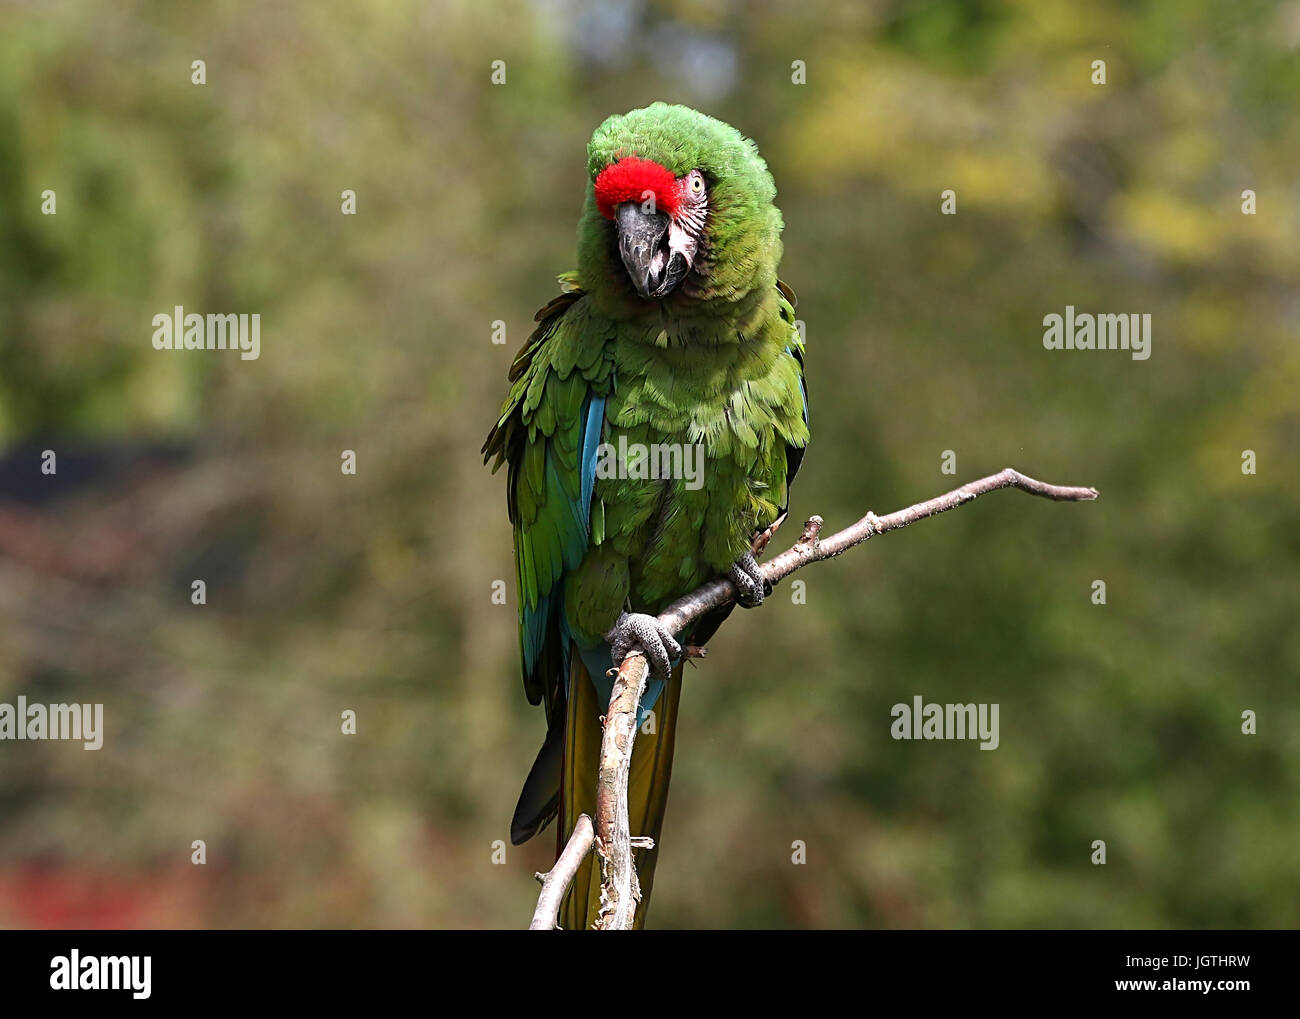 South American Military macaw (Ara militaris) posing on a branch - Stock Image